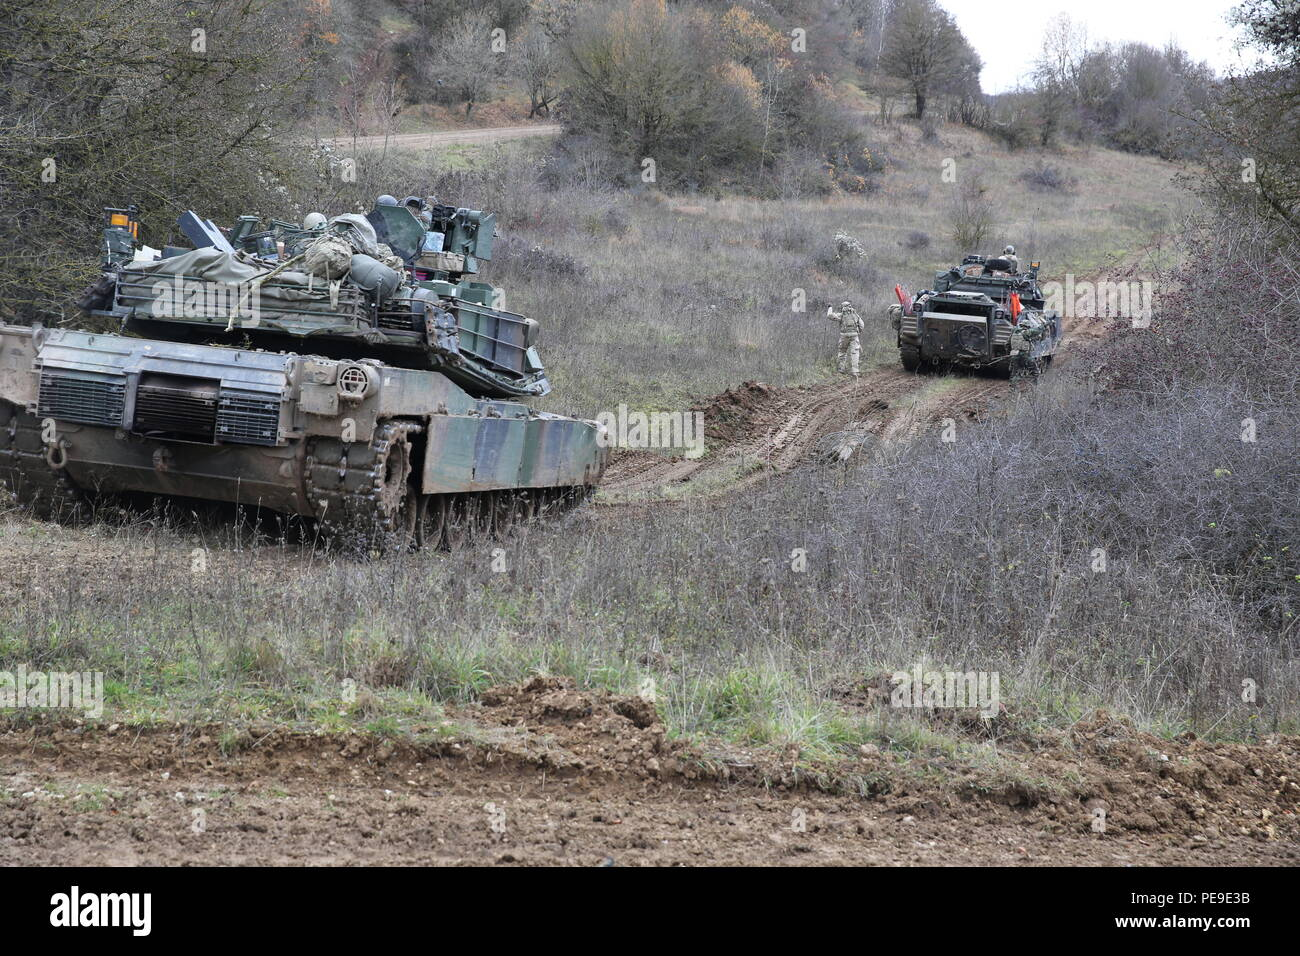 U.S. Soldiers of Bravo Company, 10th Brigade Engineer Battalion, 1st Armored Brigade, 3rd Infantry Division move through a breach while conducting breach operations during exercise Combined Resolve V at the U.S. Army's Joint Multinational Readiness Center in Hohenfels, Germany, Nov. 9, 2015. Exercise Combined Resolve V is designed to exercise the U.S. Army's regionally allocated force to the U.S. European Command area of responsibility with multinational training at all echelons. Approximately 4,600 participants from 13 NATO and European partner nations will participate. The exercise involves  - Stock Image